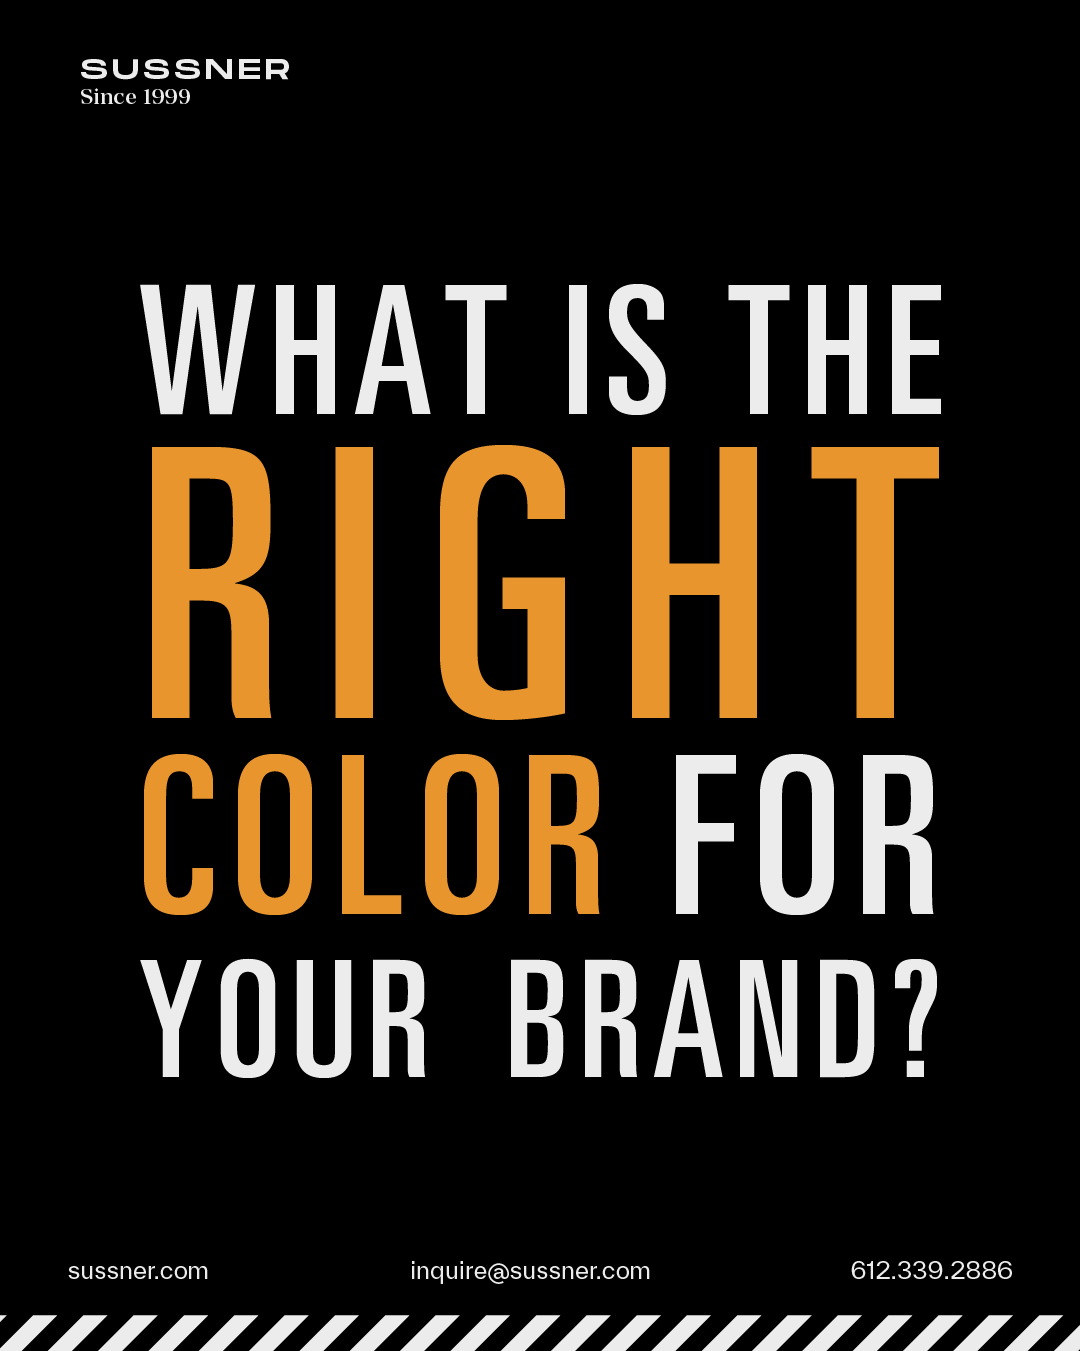 How to choose the right color for your brand?